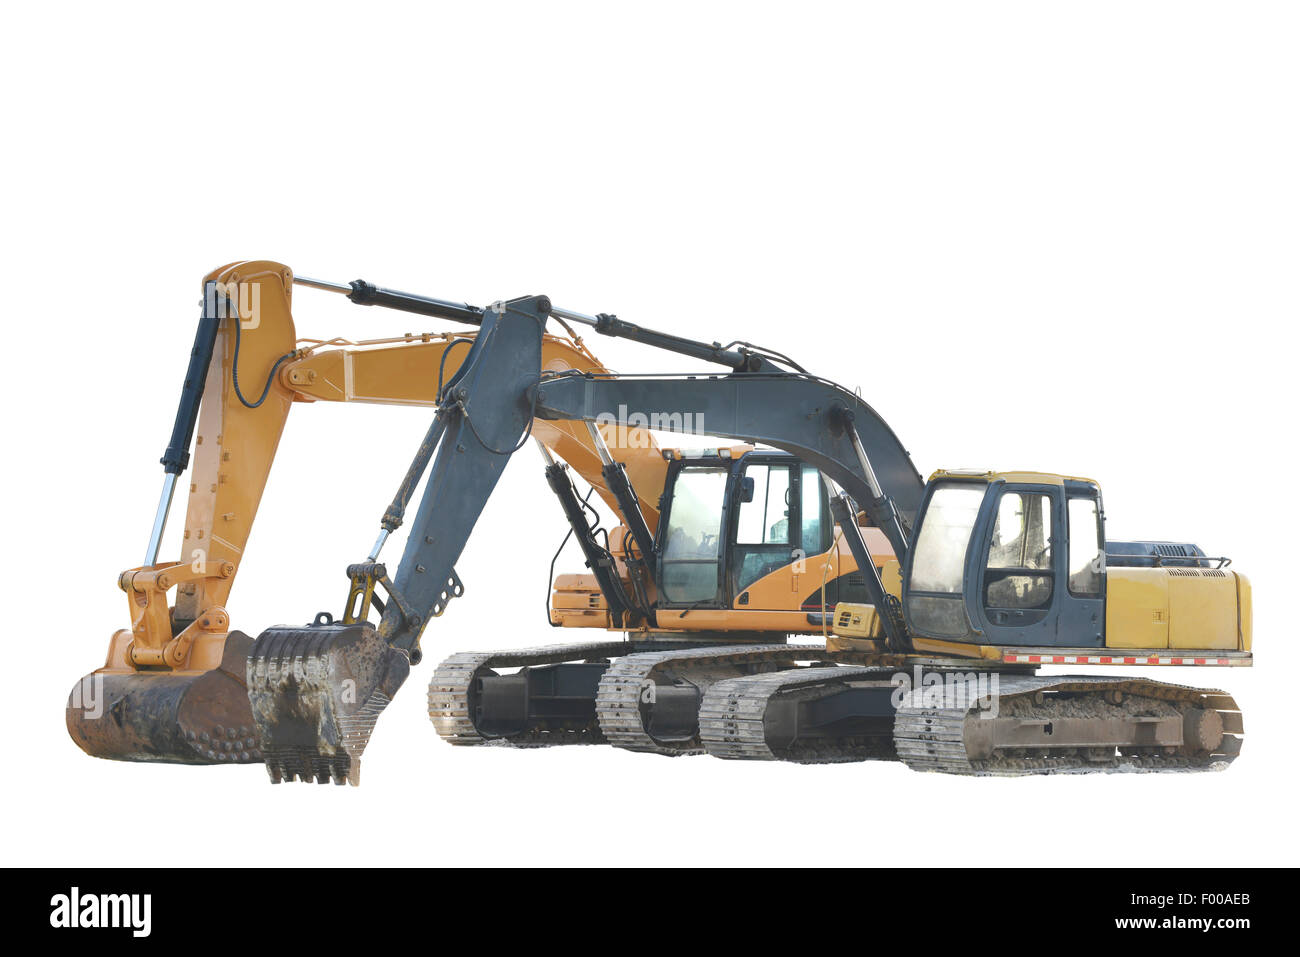 Two big excavators isolated on a white background - Stock Image